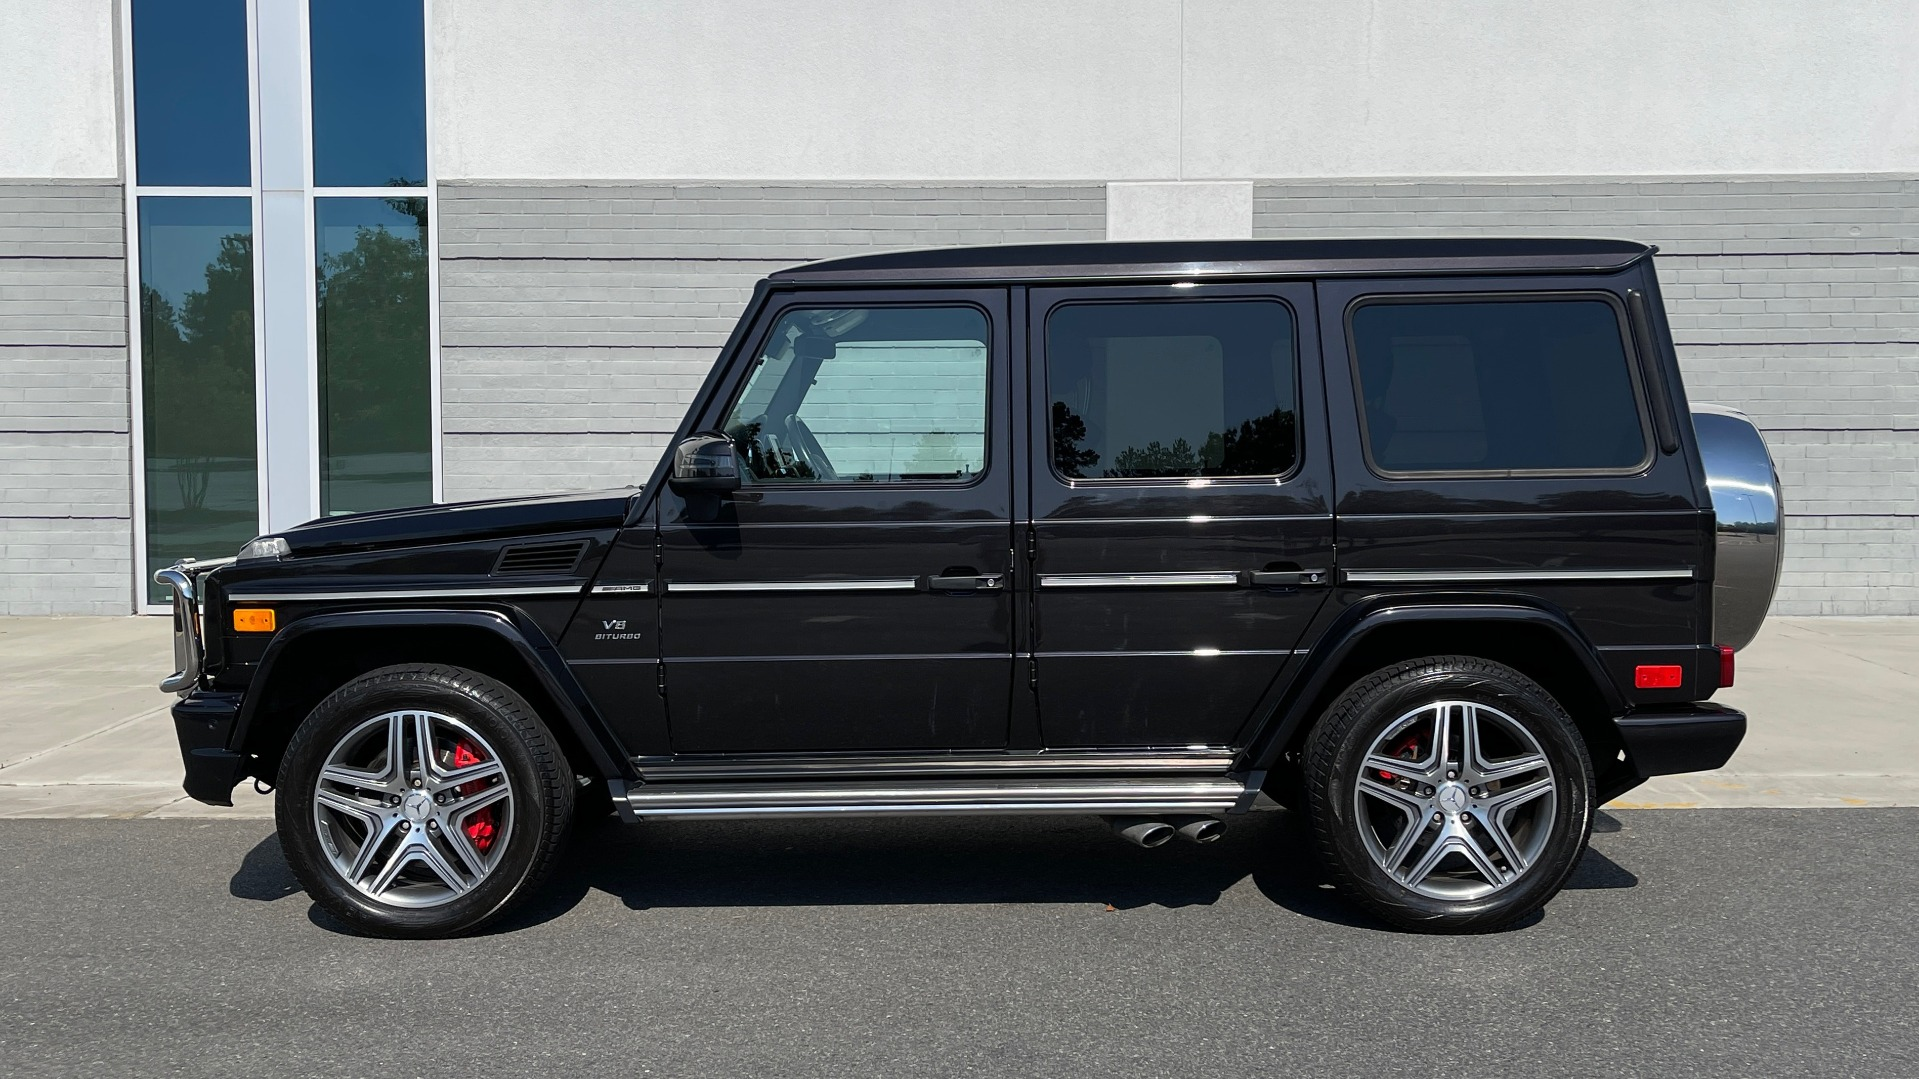 Used 2014 Mercedes-Benz G-CLASS G 63 AMG / DISGNO LEATHER / NAV / SUNROOF / REARVIEW for sale $88,999 at Formula Imports in Charlotte NC 28227 3